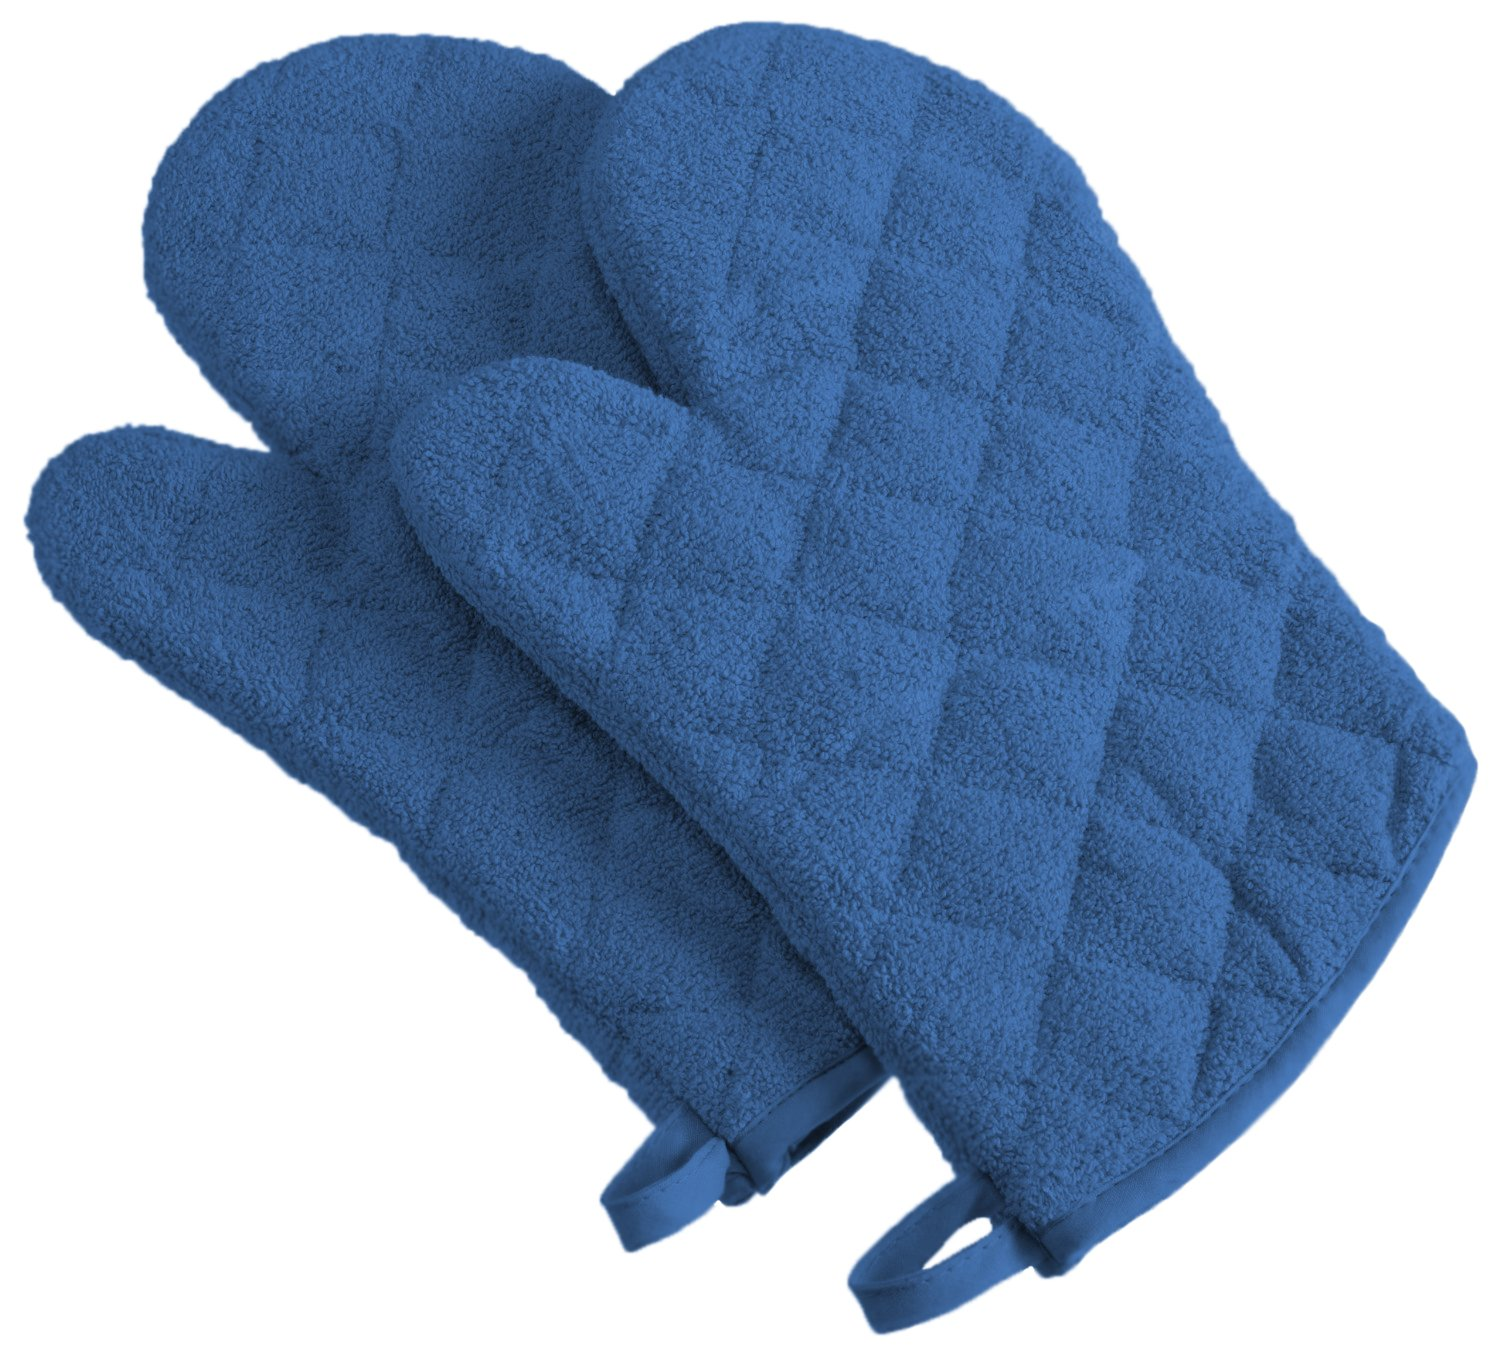 DII 100% Cotton, Terry Oven Mitt Set Machine Washable, Heat Resistant, 7 x 13, Blueberry, 2 Piece